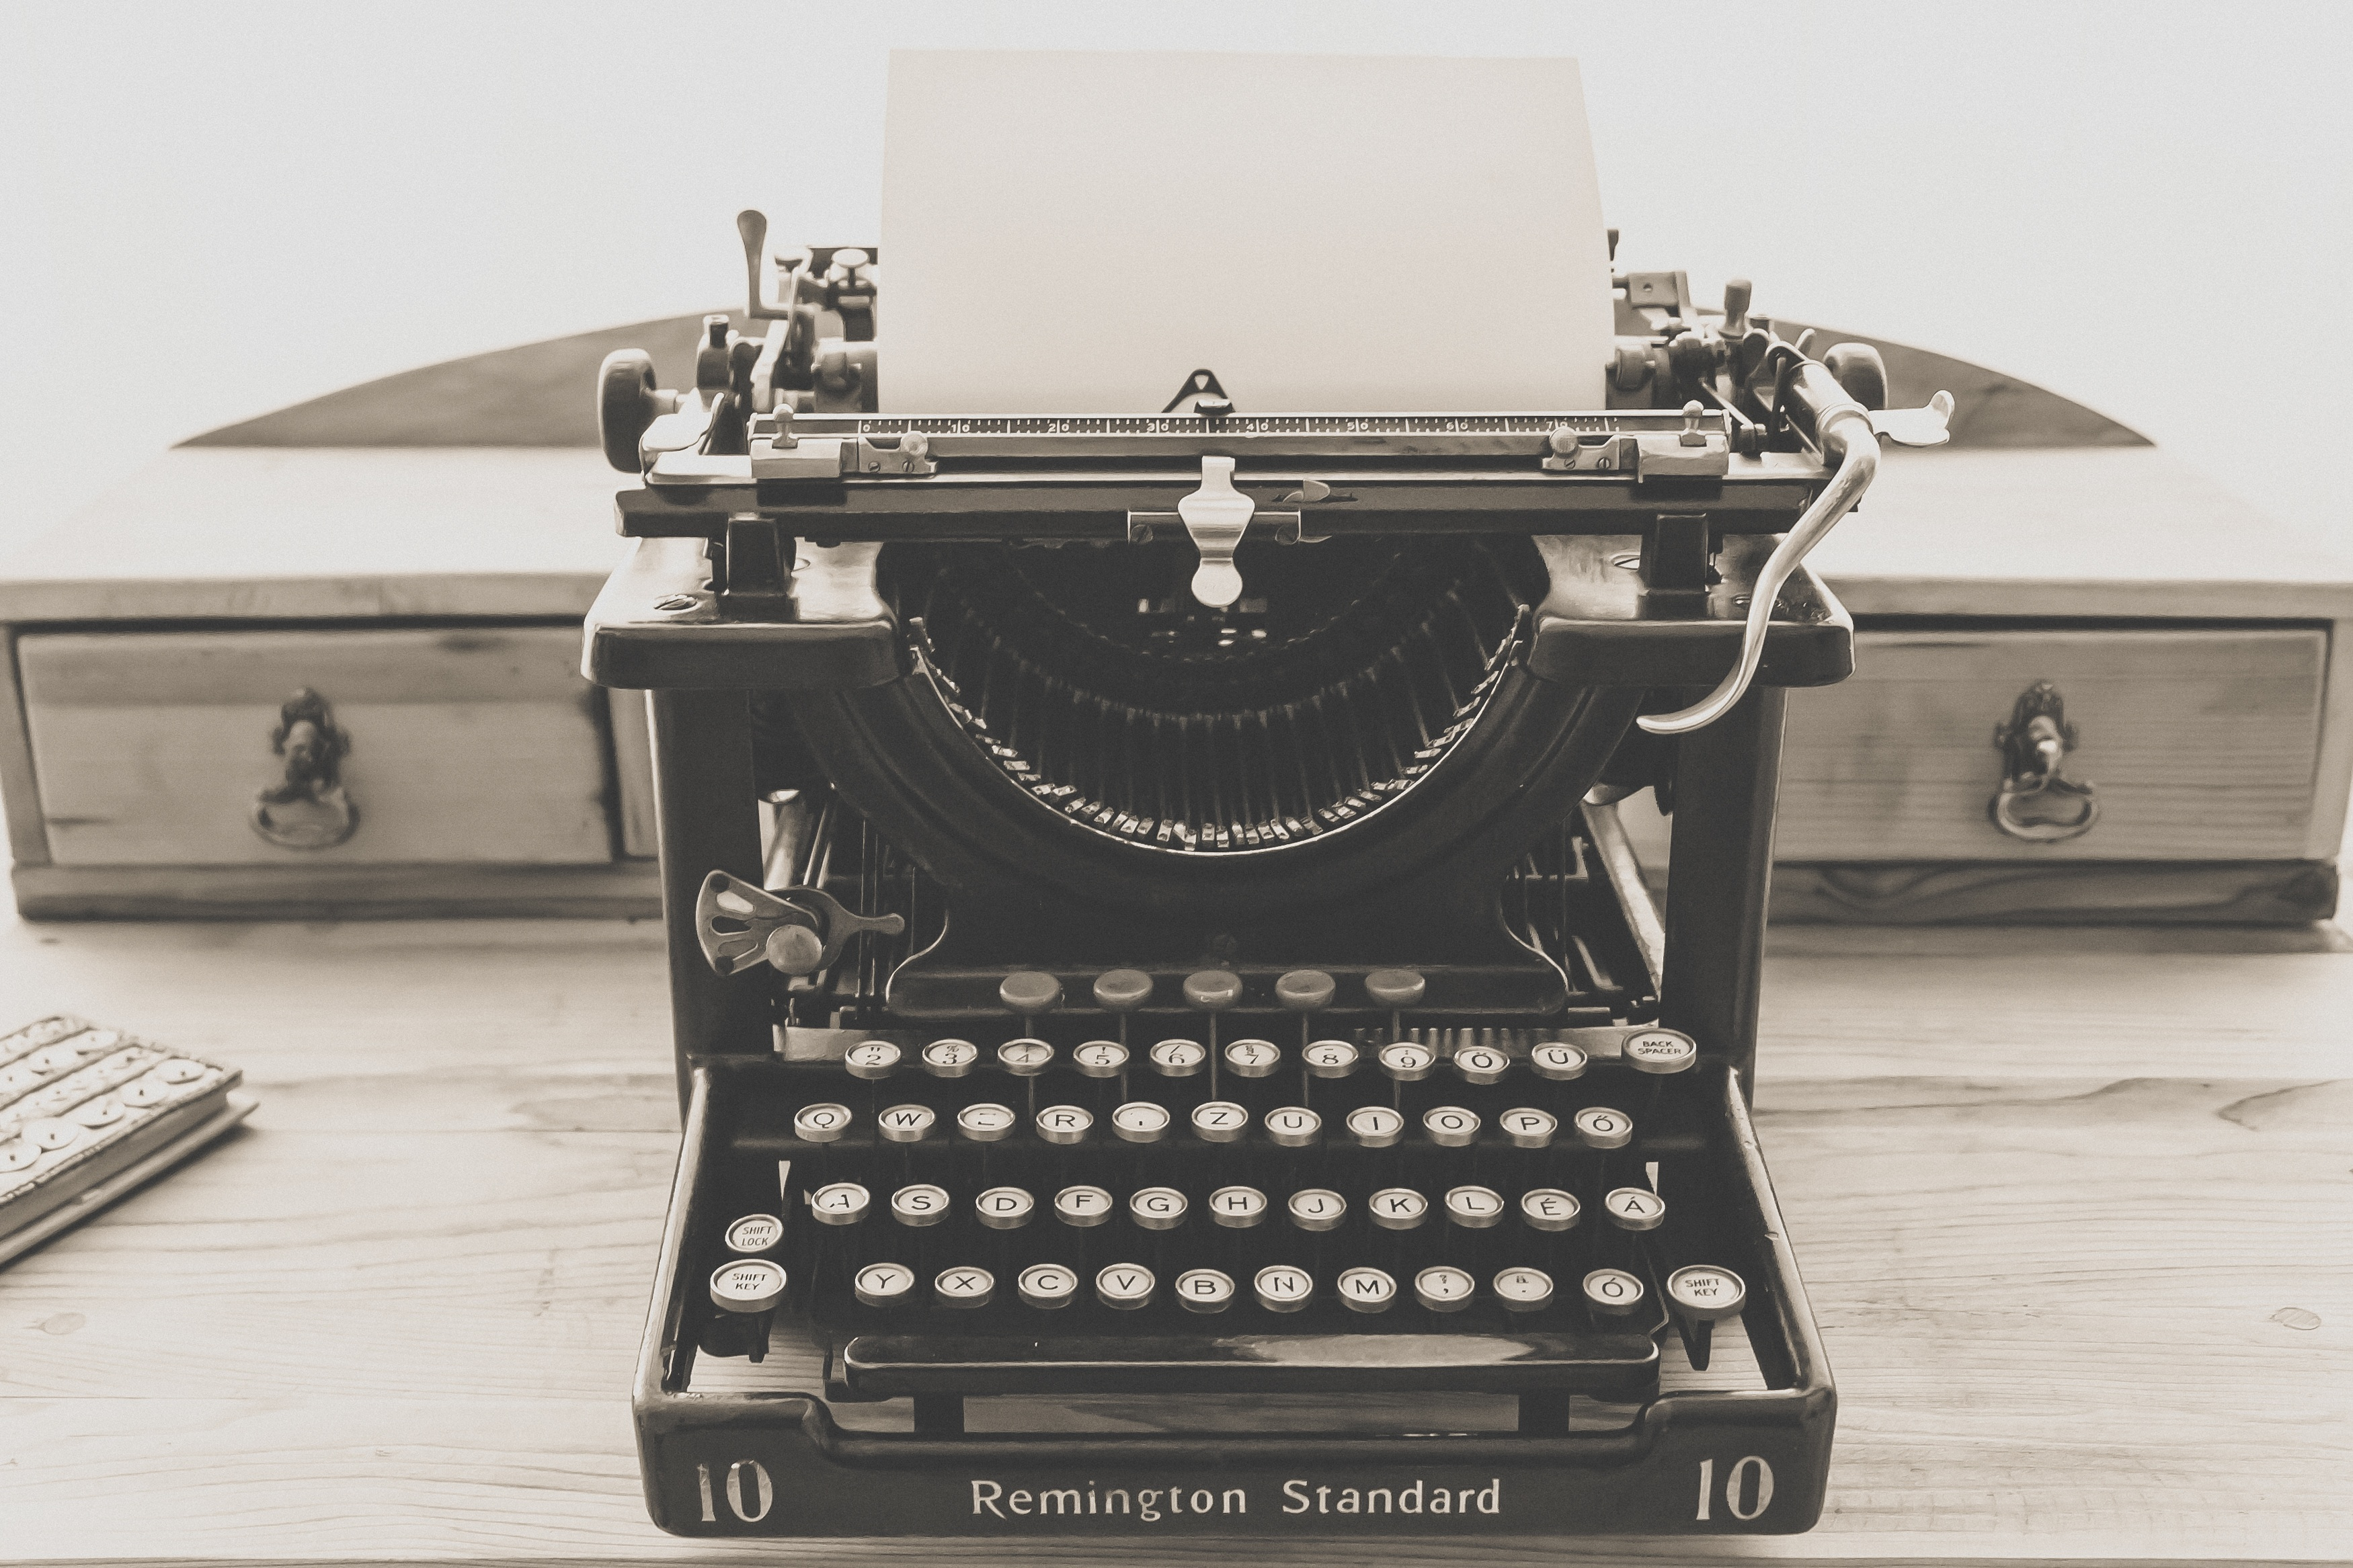 A black-and-white image of a Remington Standard typewriter on a wooden desk. In the typewriter is a blank page of paper.